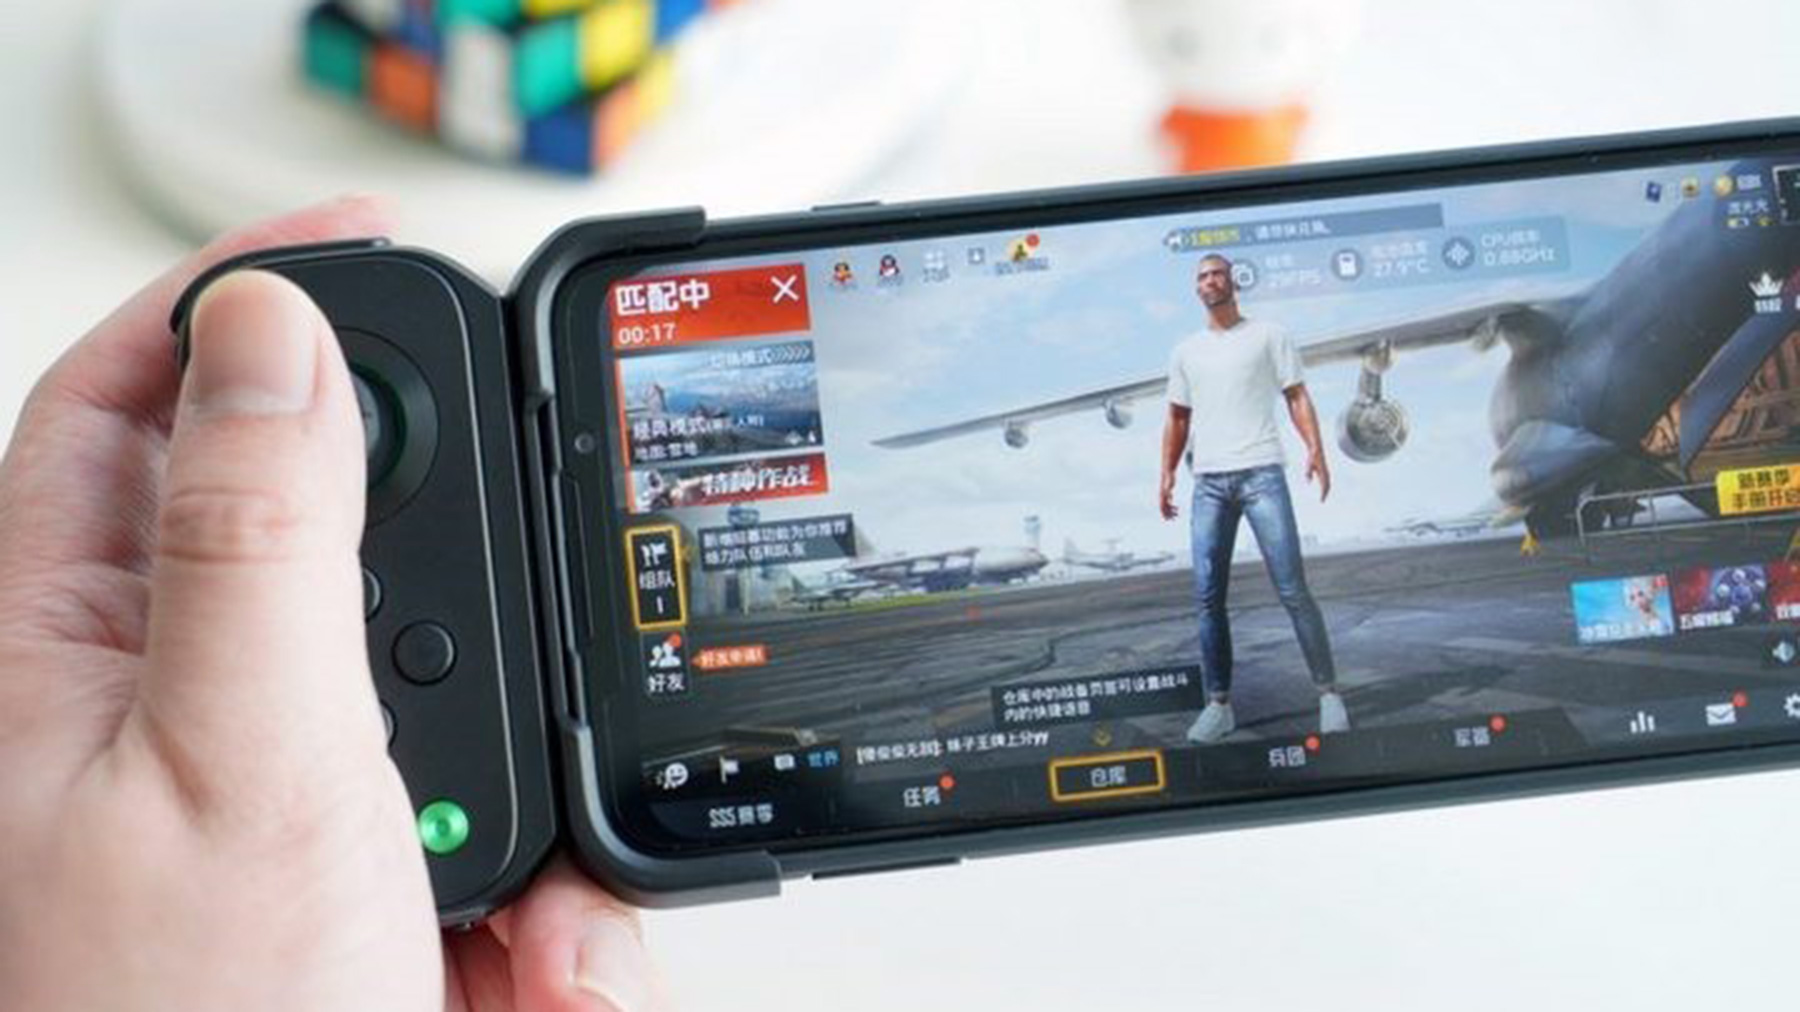 High refresh rate screen popular, game mobile phone concept is still established 4